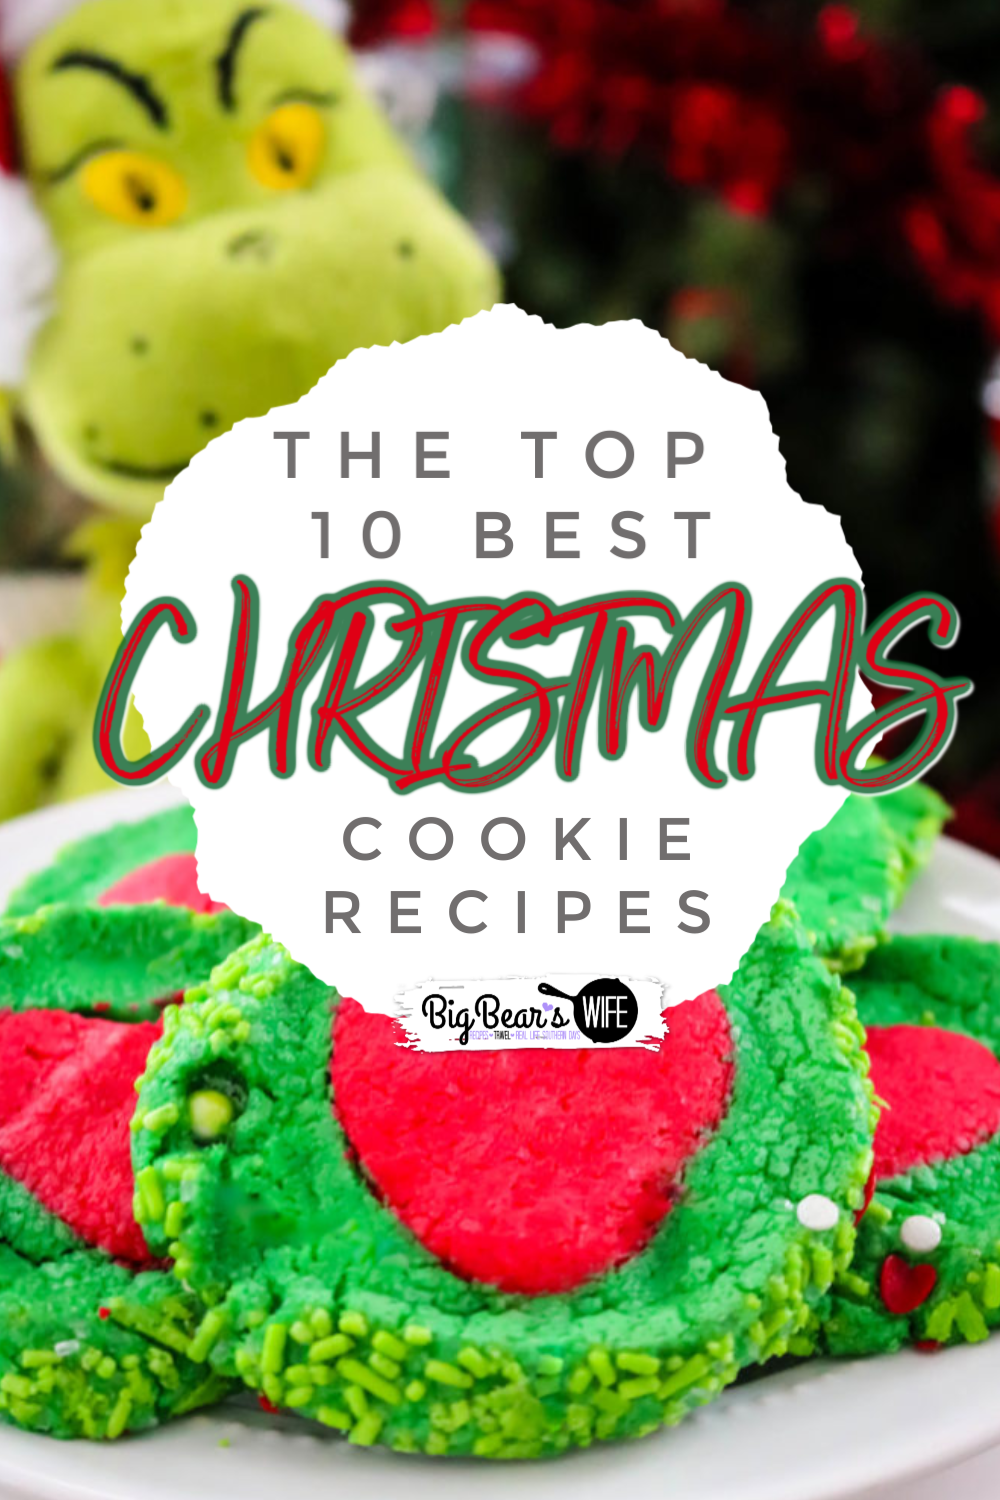 10 of the Best Christmas Cookie Recipes - If you love baking for the Holidays then you've found the right cookie post! Here you'll find 10 of the best Christmas cookie recipes that are perfect for Cookie Swaps, neighbor gifts, holiday bake sales and great for Santa! via @bigbearswife